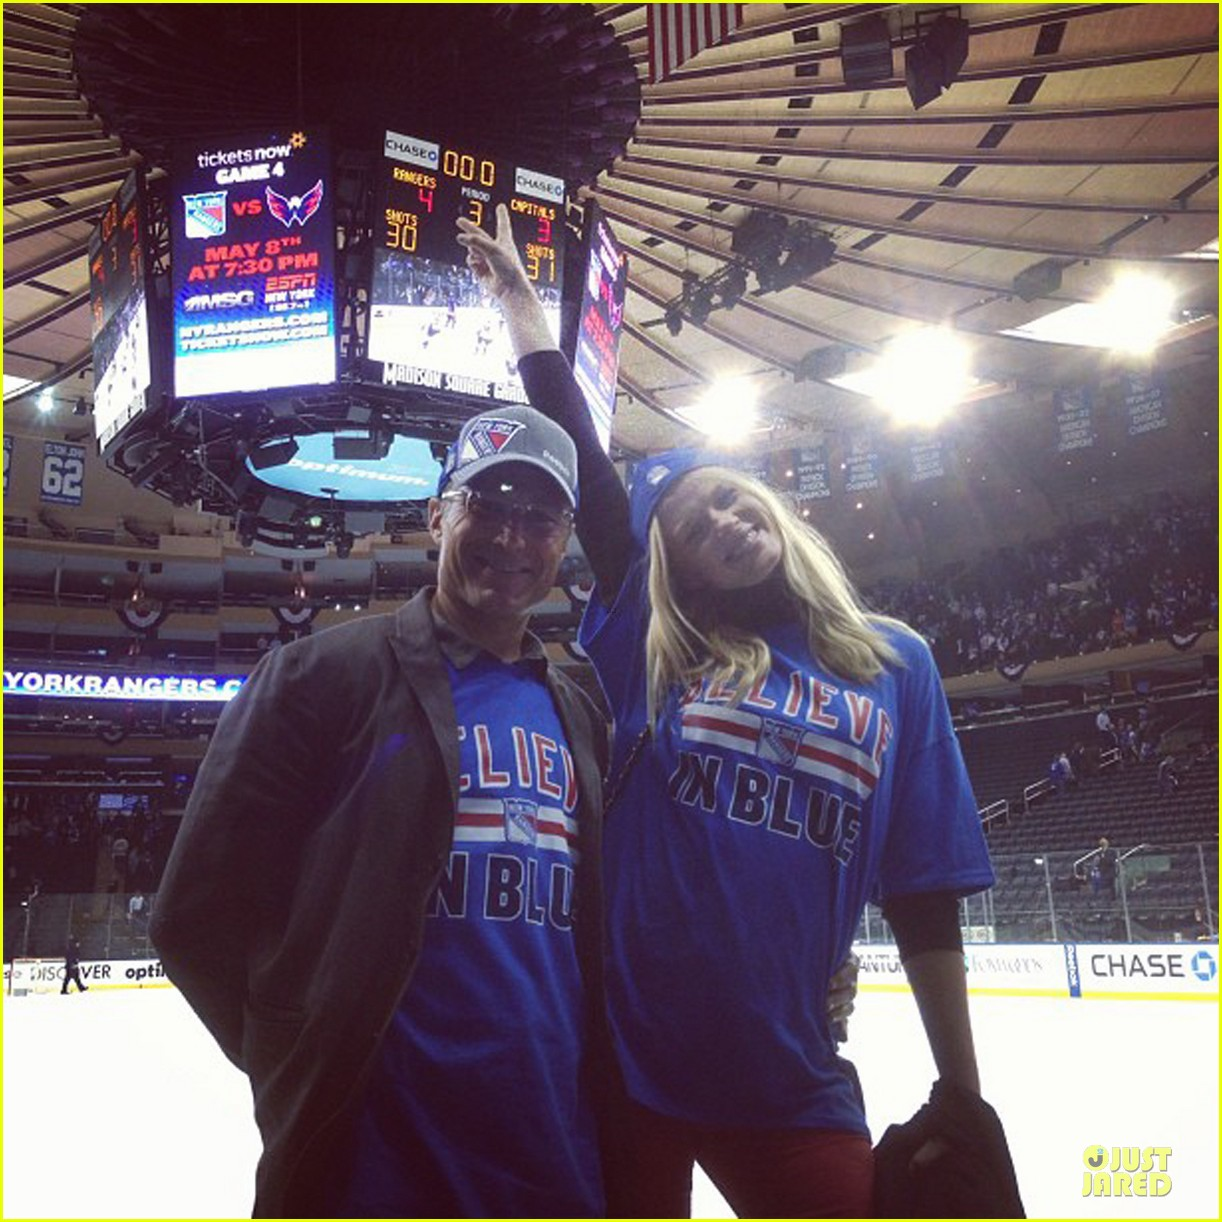 anne v chace crawford new york rangers nhl playoff game 05